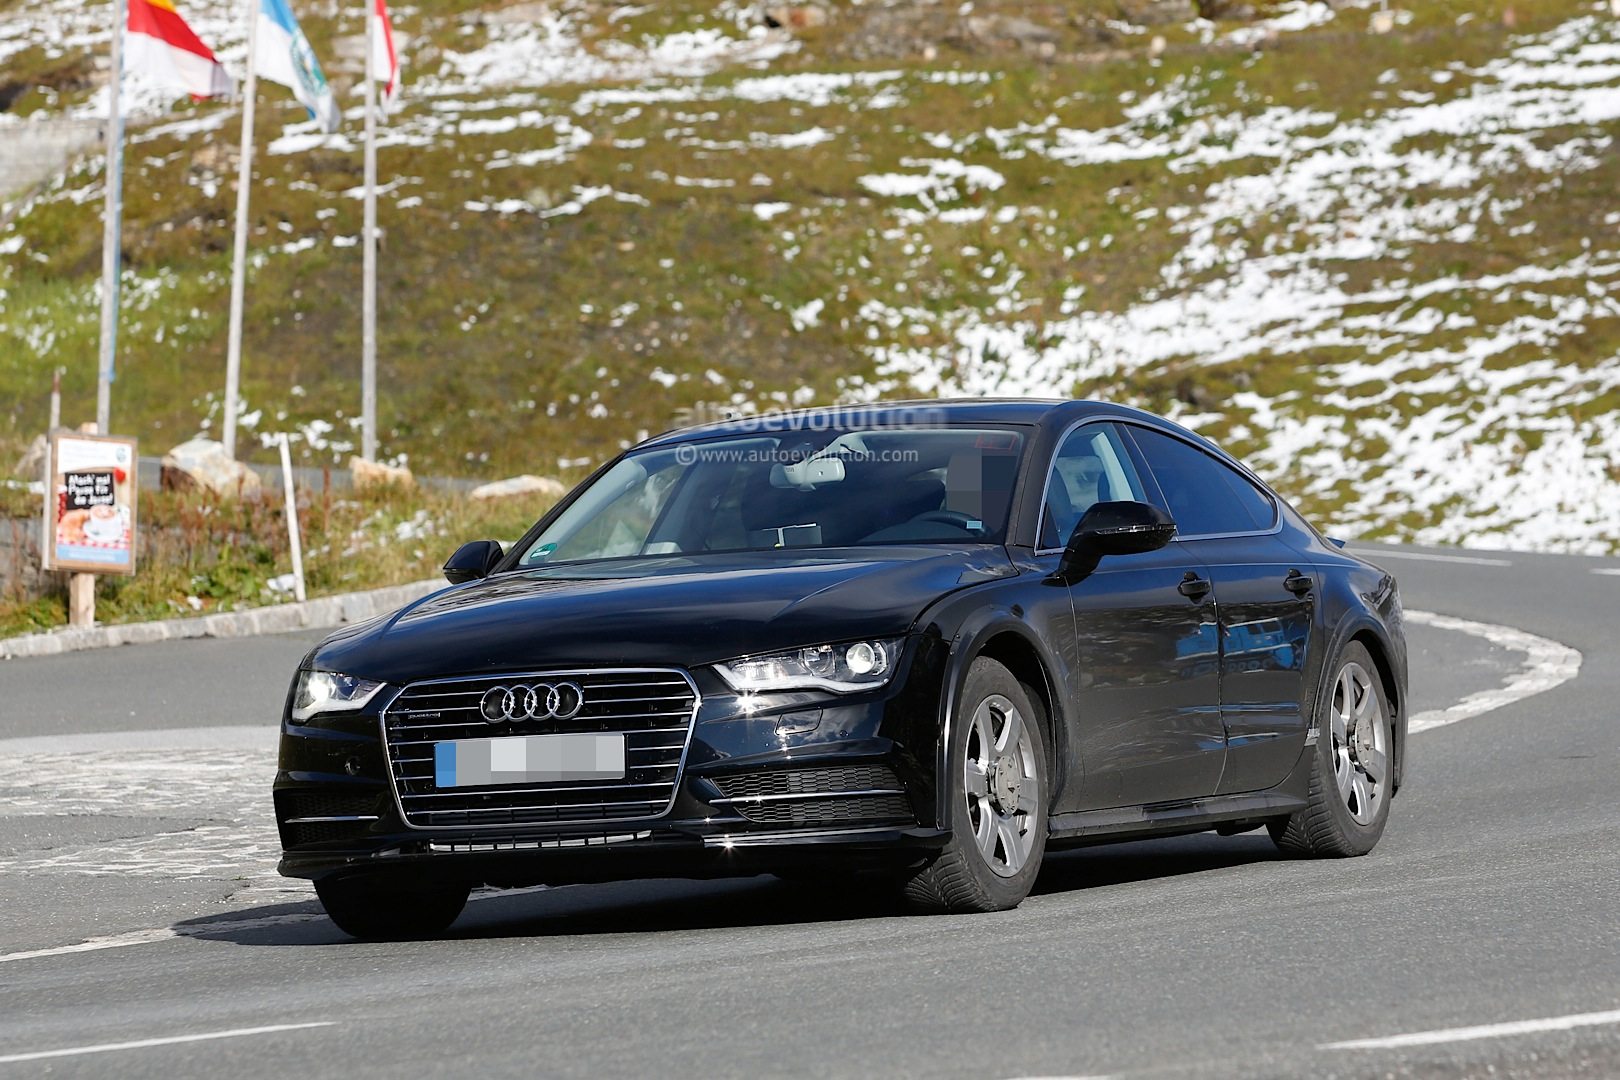 Spyshots: 2018 Audi A7 Chassis Testing Mule Seen for the ...